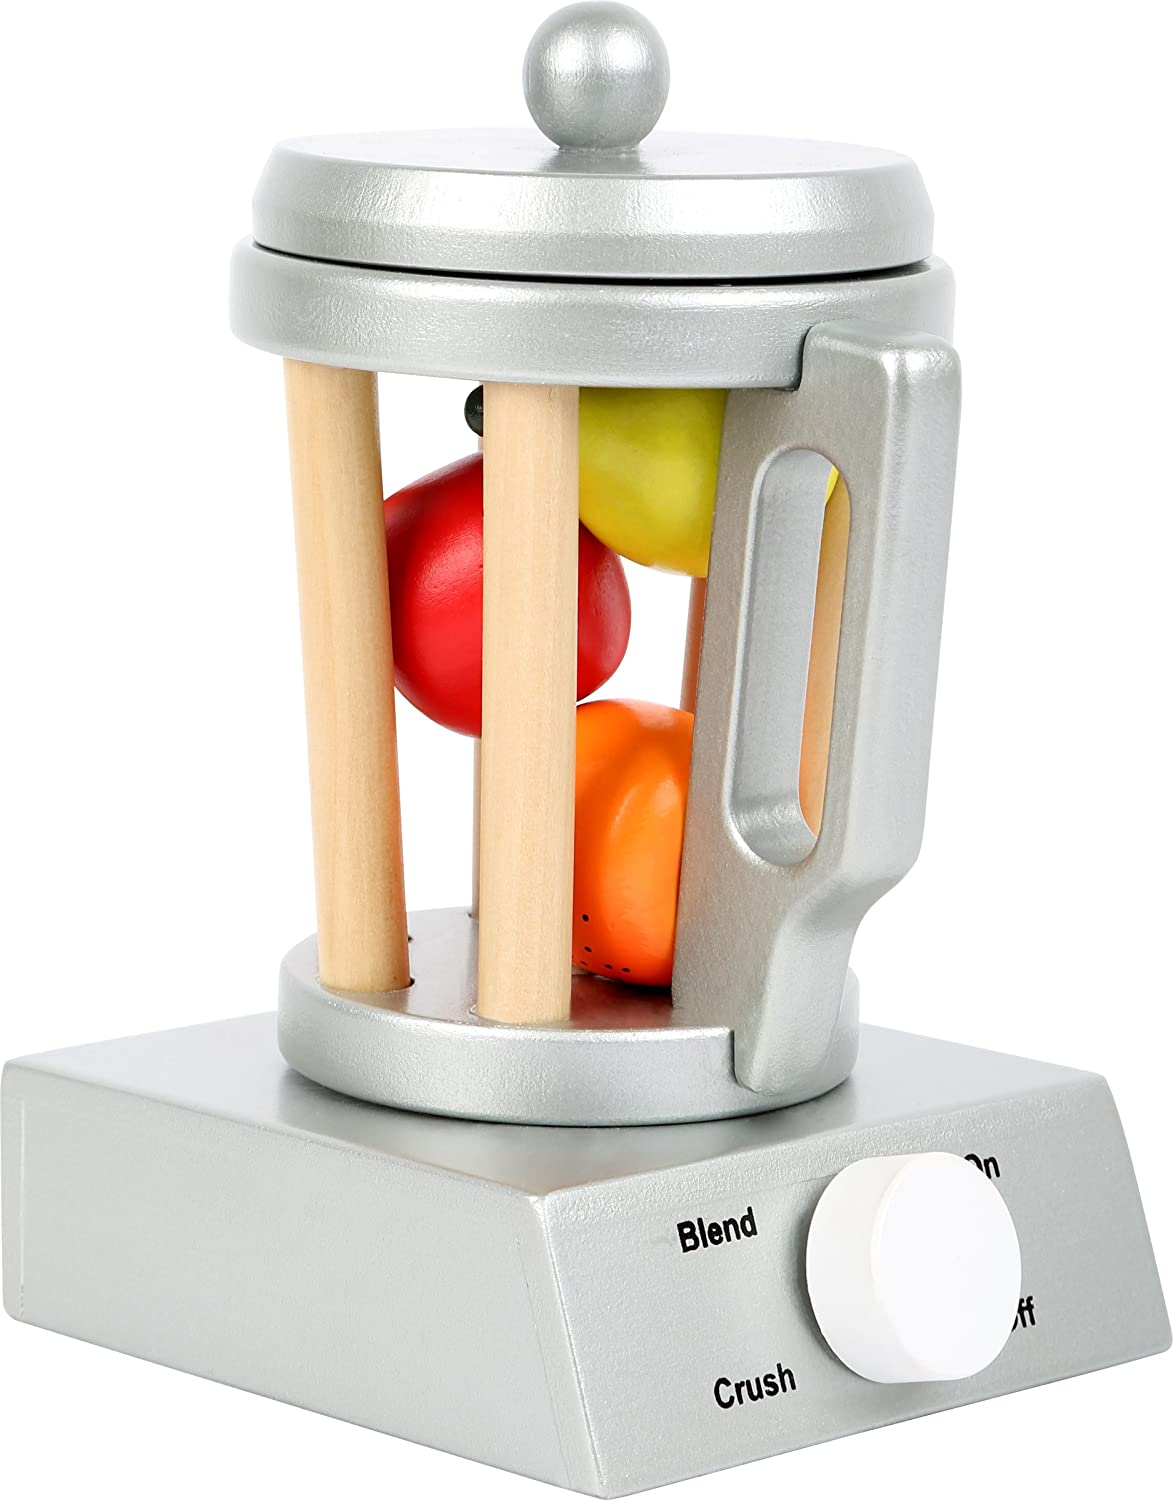 small foot wooden toys Wooden Blender Set Includes Fruit for Play Kitchens Designed for Children Ages 3+